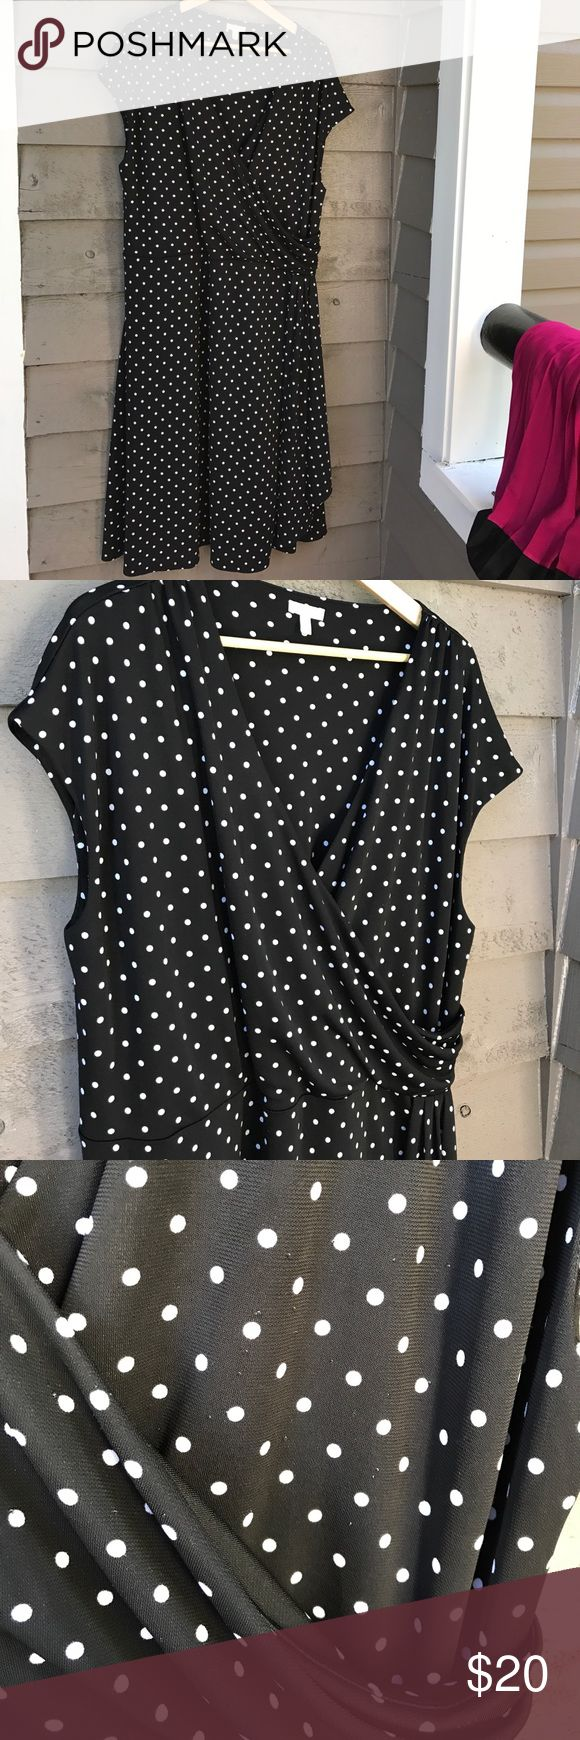 Talbots polka dot dress Talbots black and white polka dot dress . On one side of the dress you will find a small picky spots that are in the pictures . They are not very noticeable but I have discounted this dress based on that. The dress will be very flattering. talbots Dresses